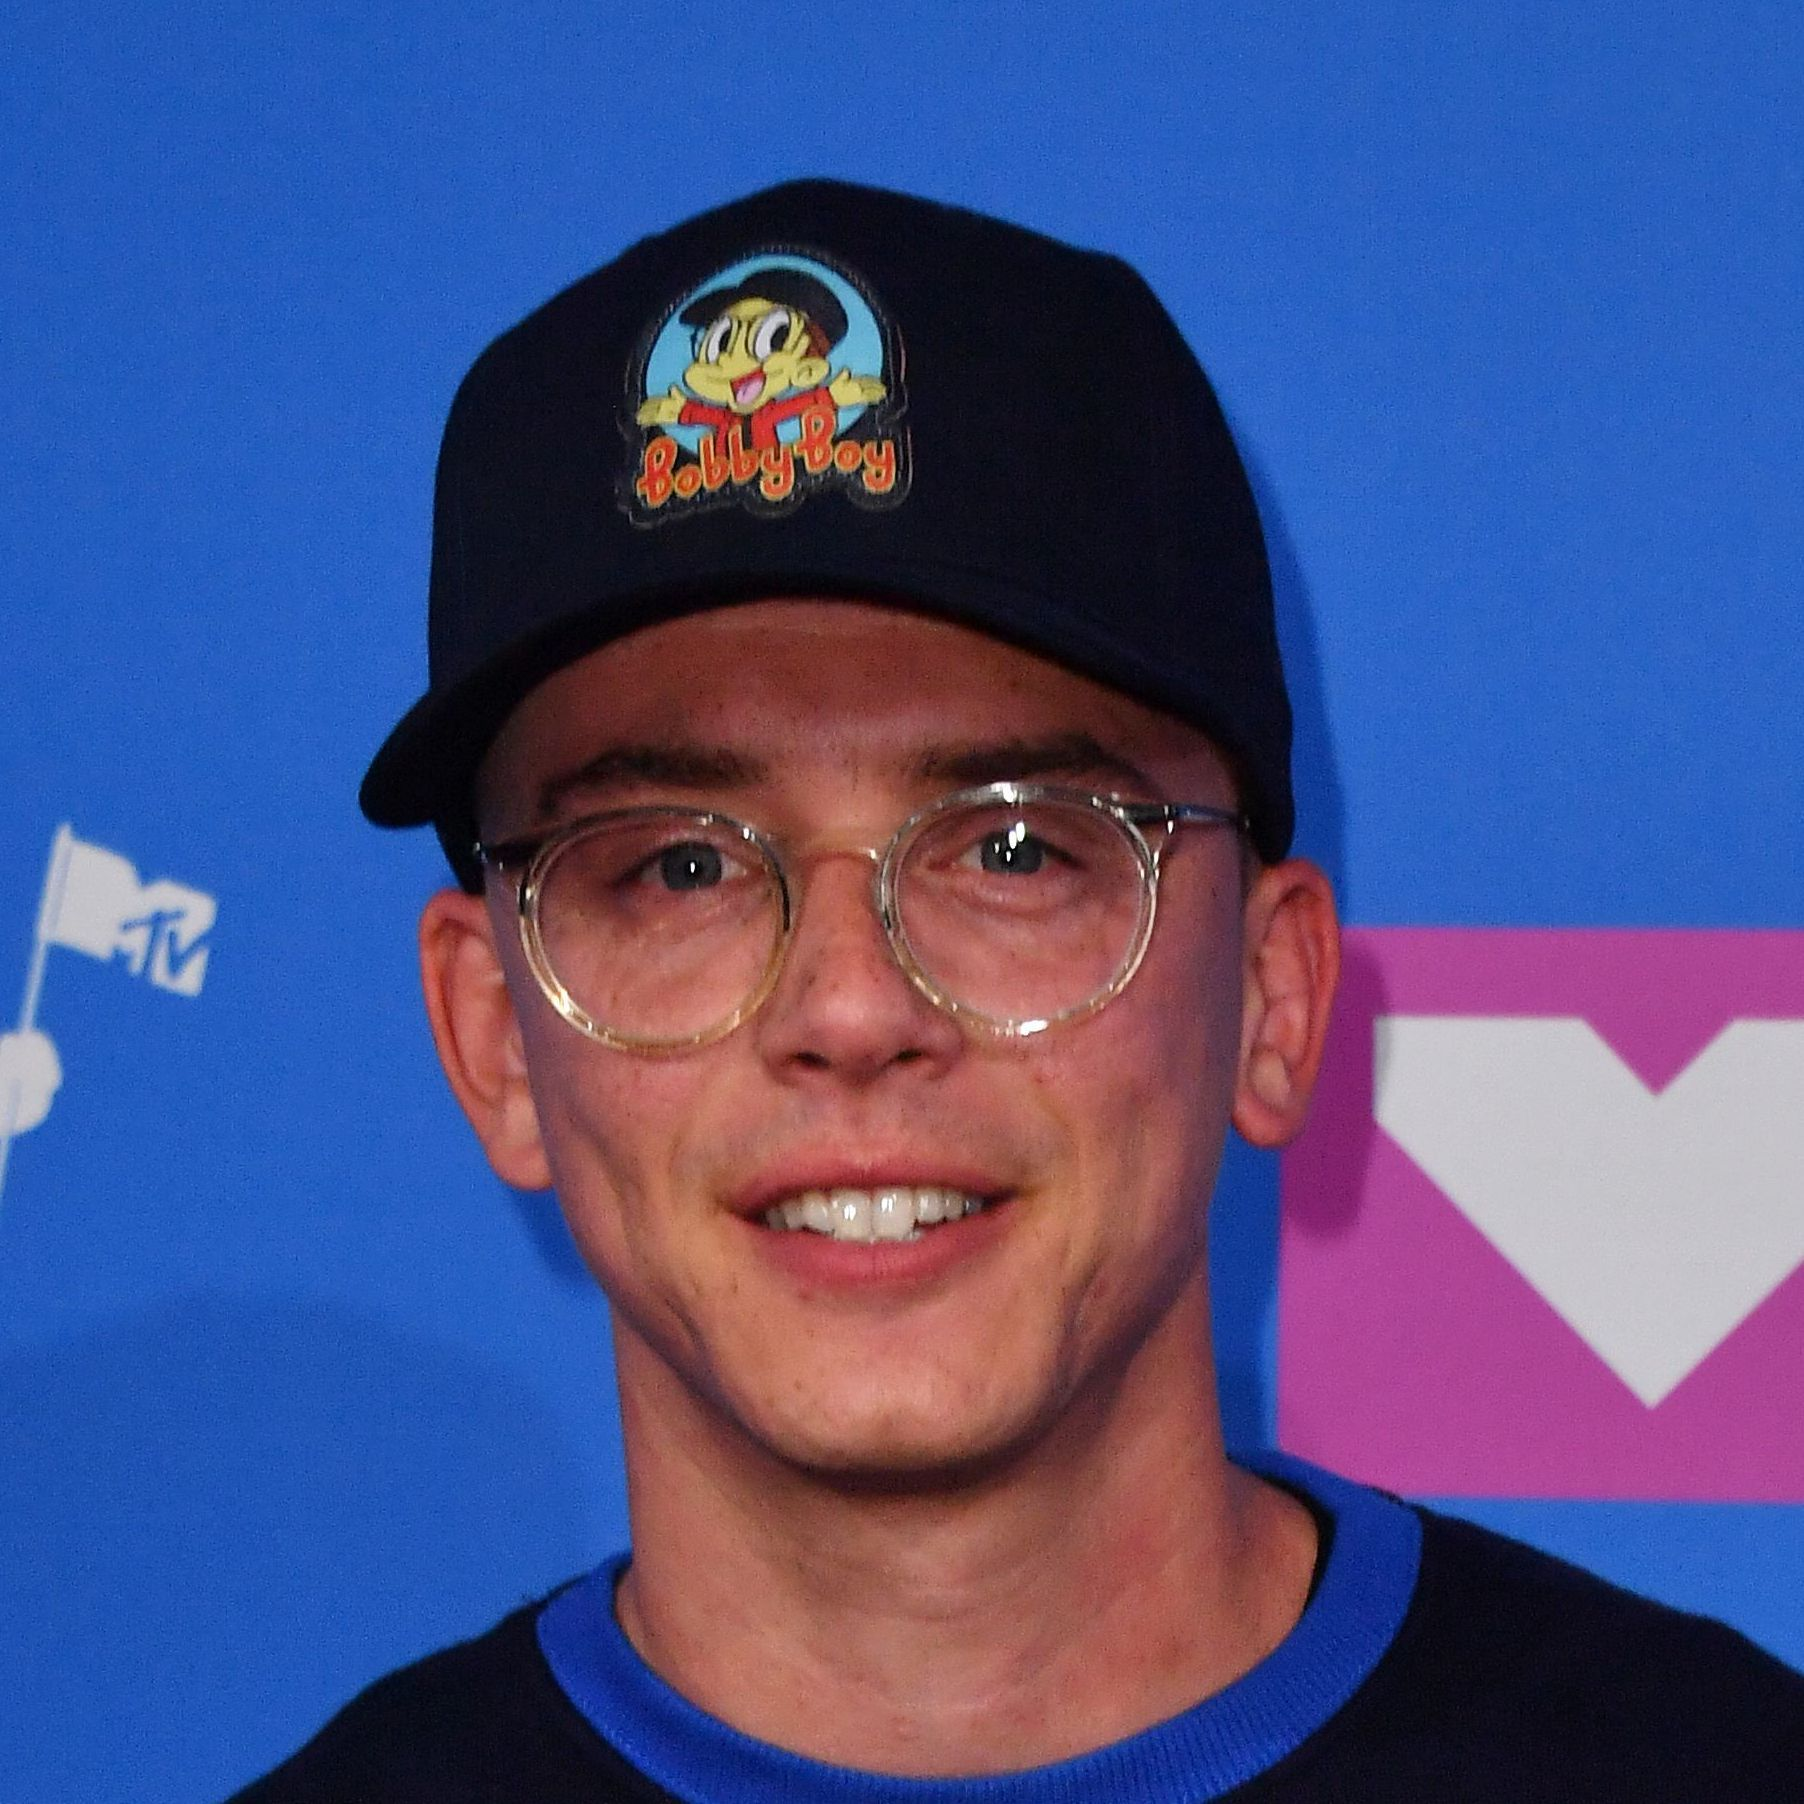 Logic's New Album Confessions Of A Dangerous Mind Comes With